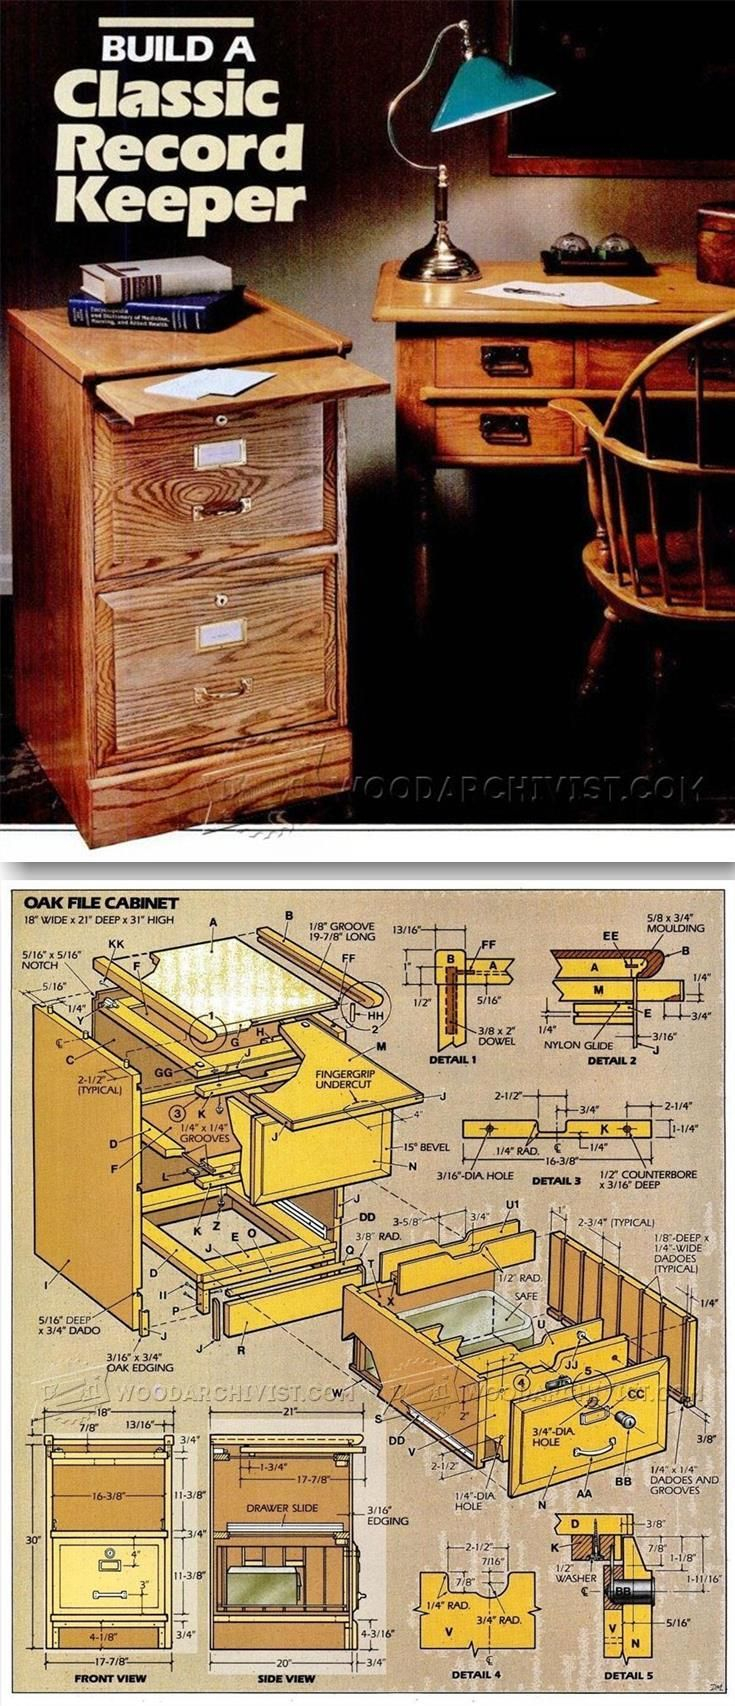 467 best woodworking plans images on Pinterest Woodworking